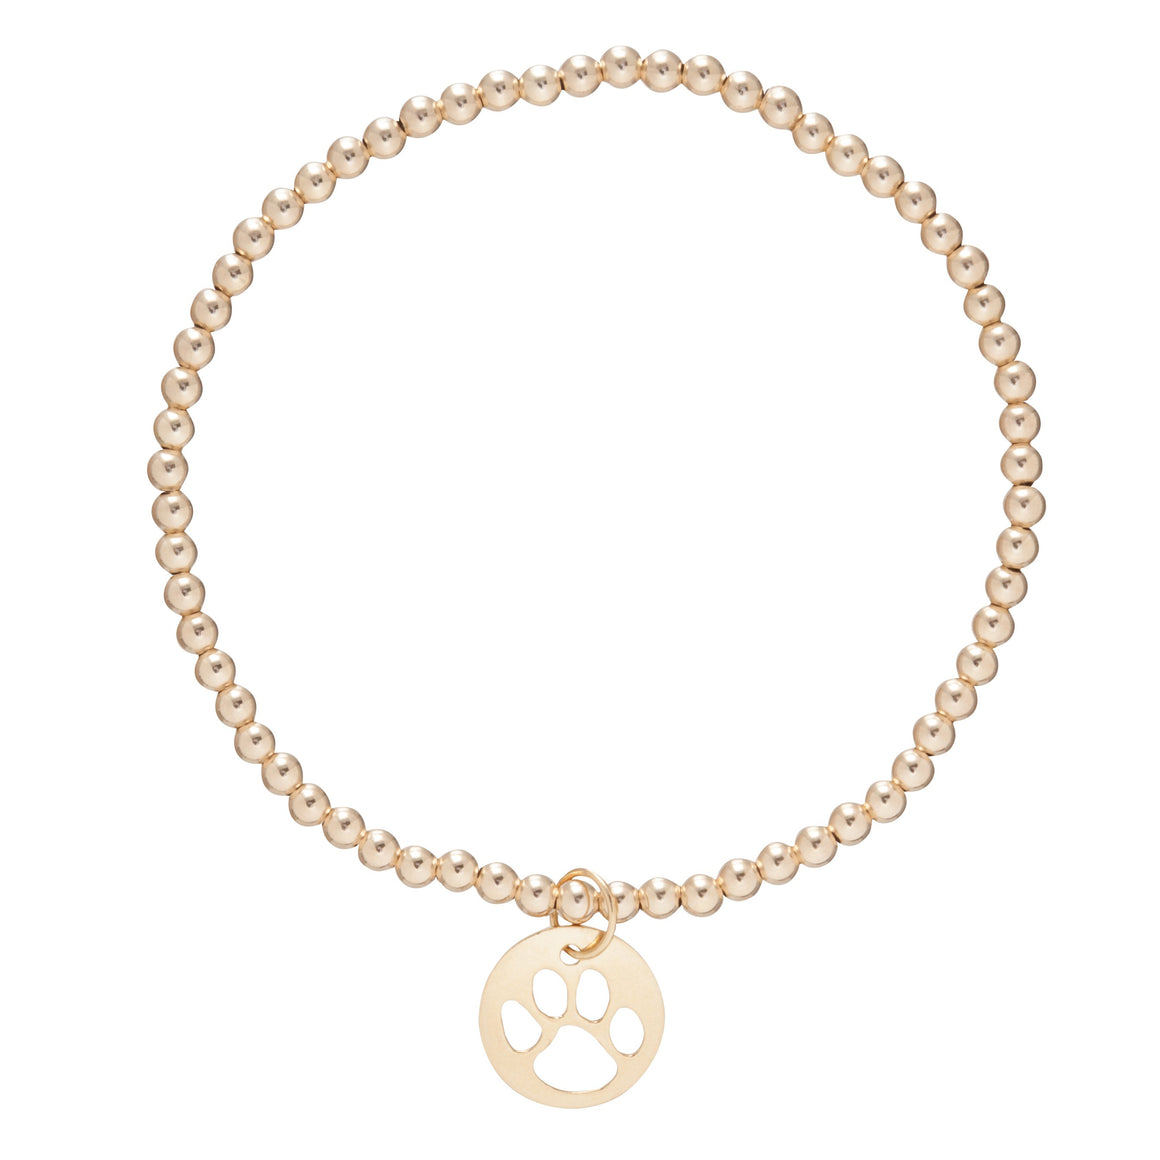 enewton Gold 3mm Bead and Paw Print Charm Bracelet